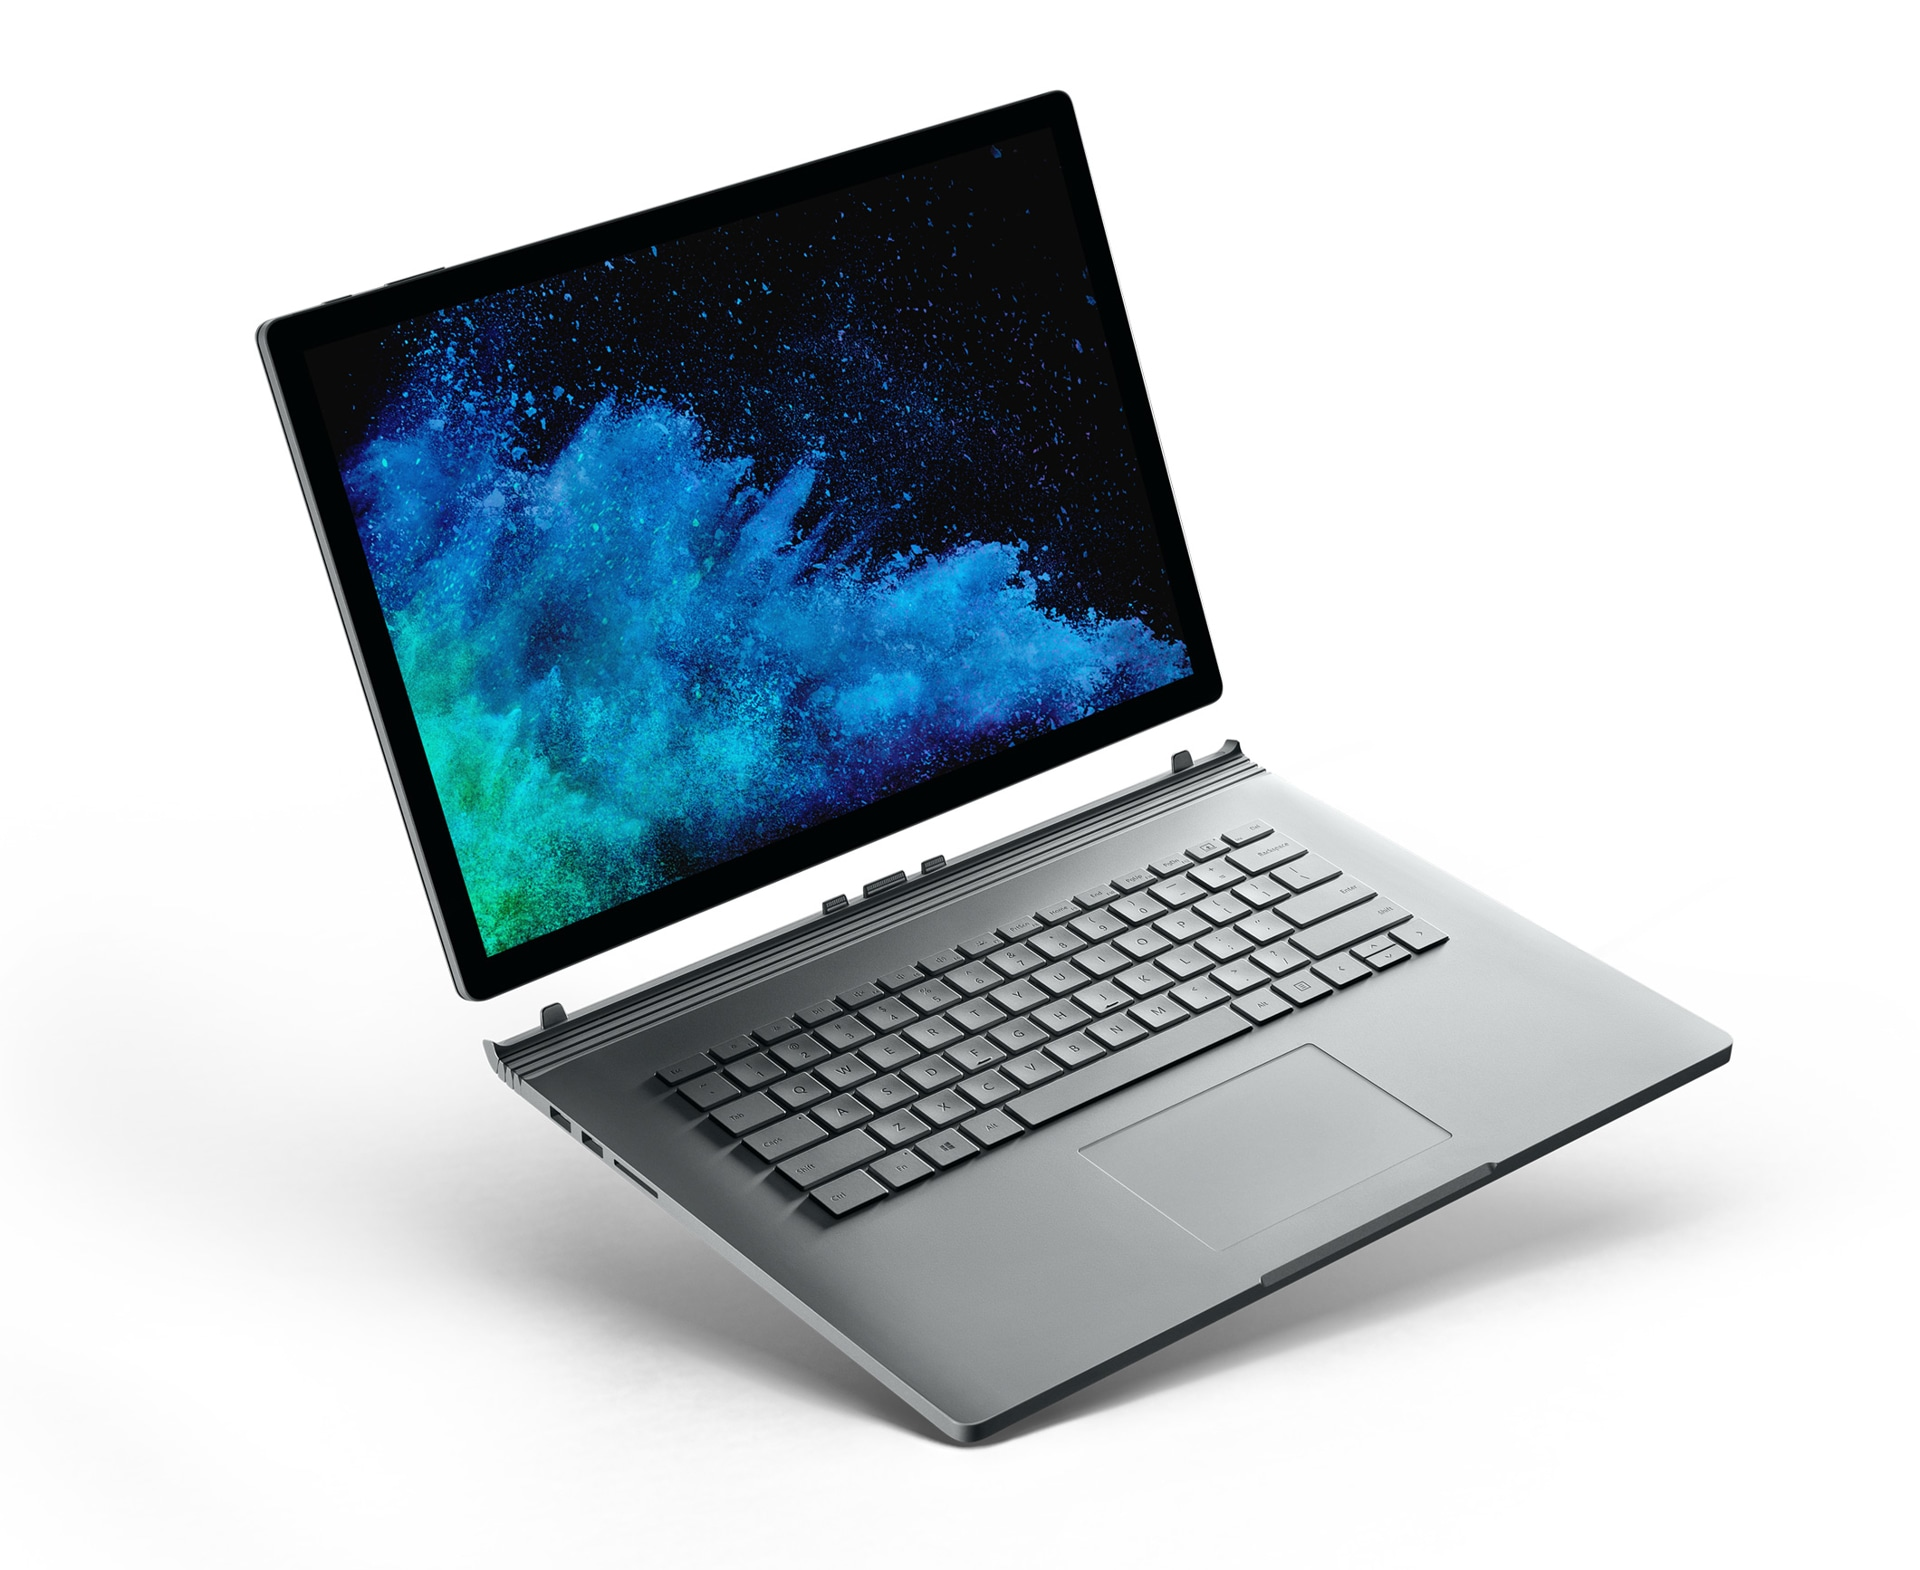 Surface Book 2 con la pantalla extraída